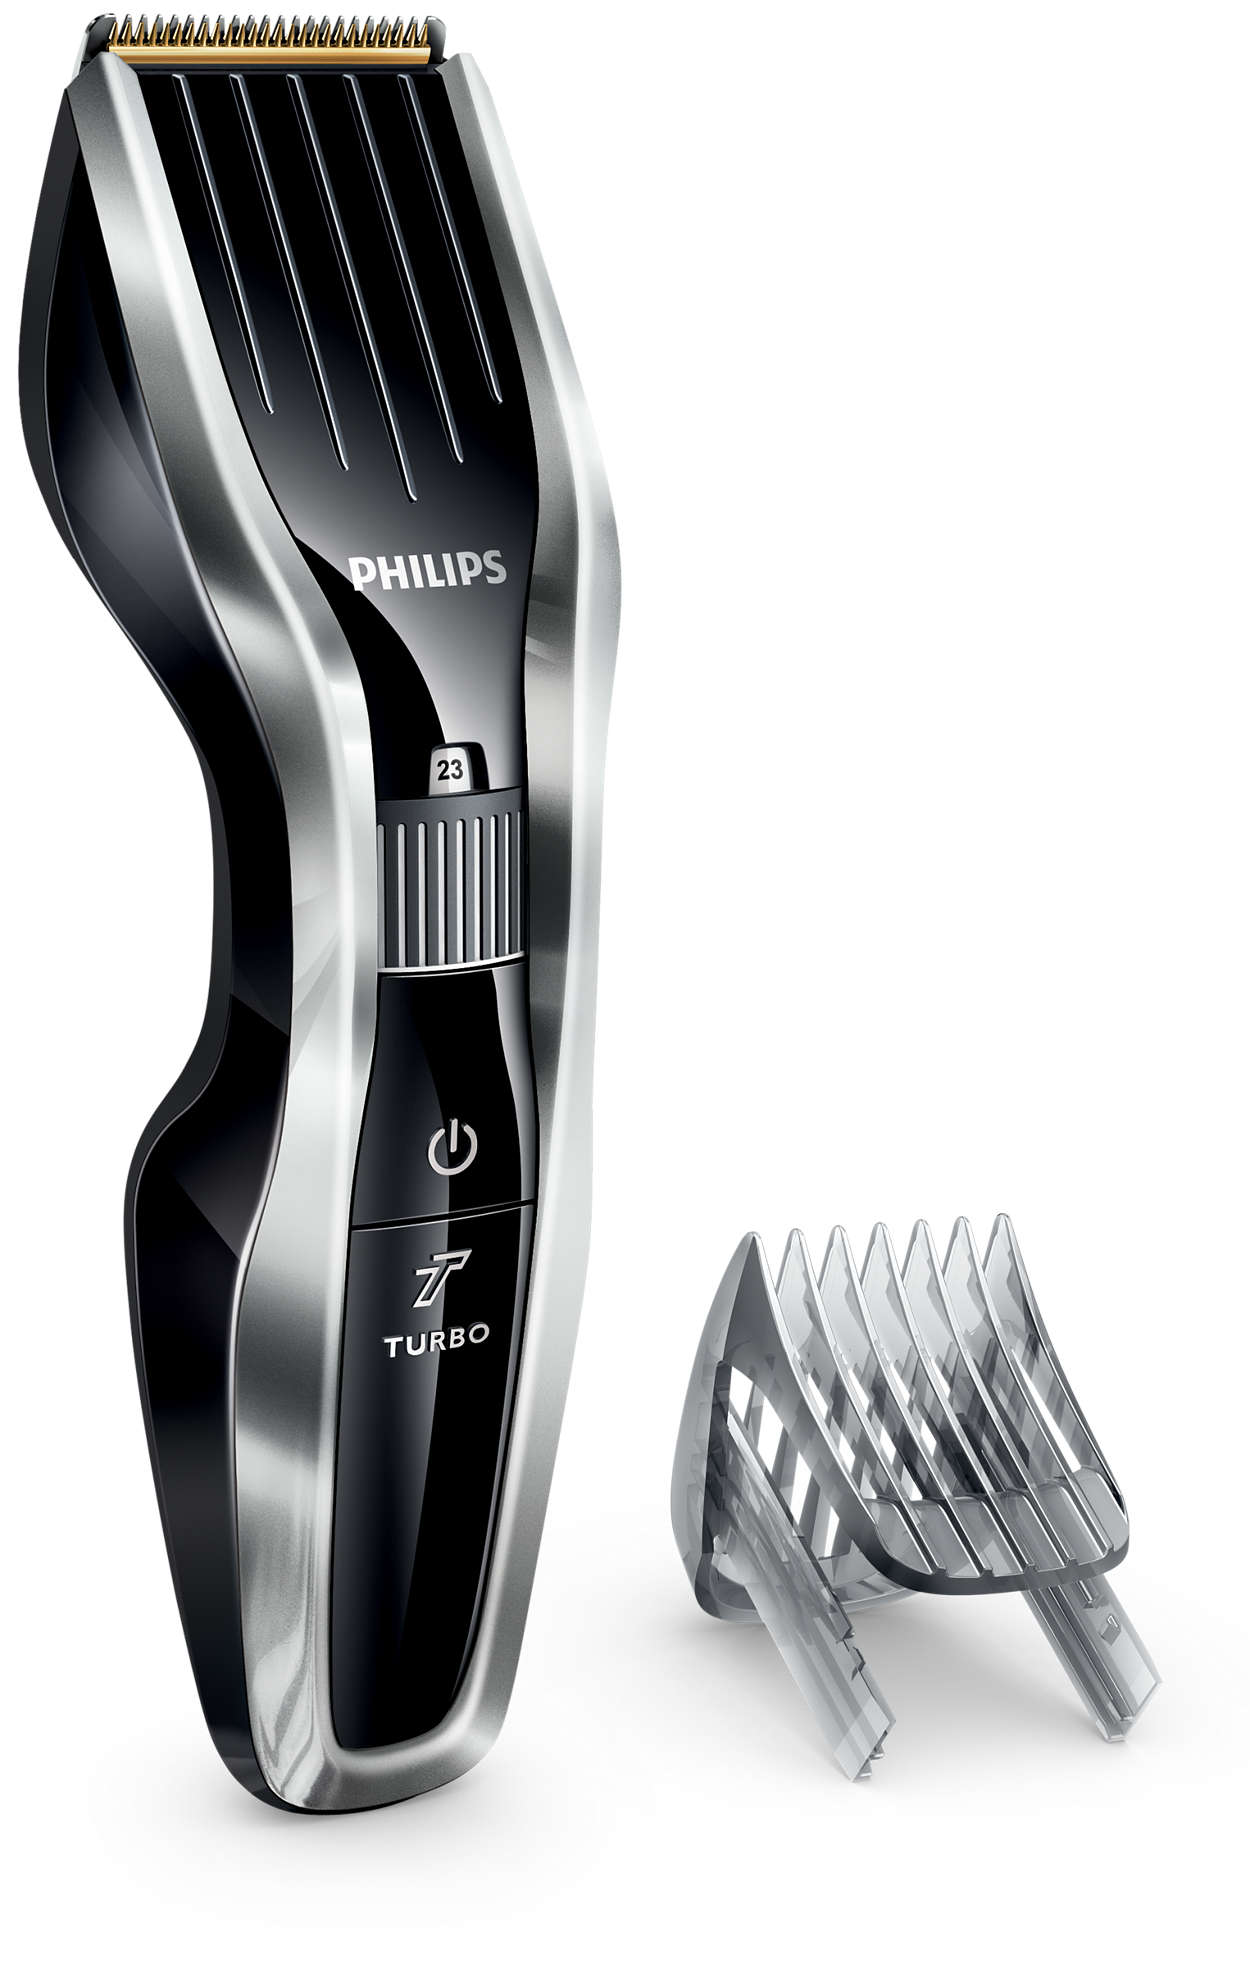 hairclipper series 5000 tondeuse cheveux hc5450 16 philips. Black Bedroom Furniture Sets. Home Design Ideas